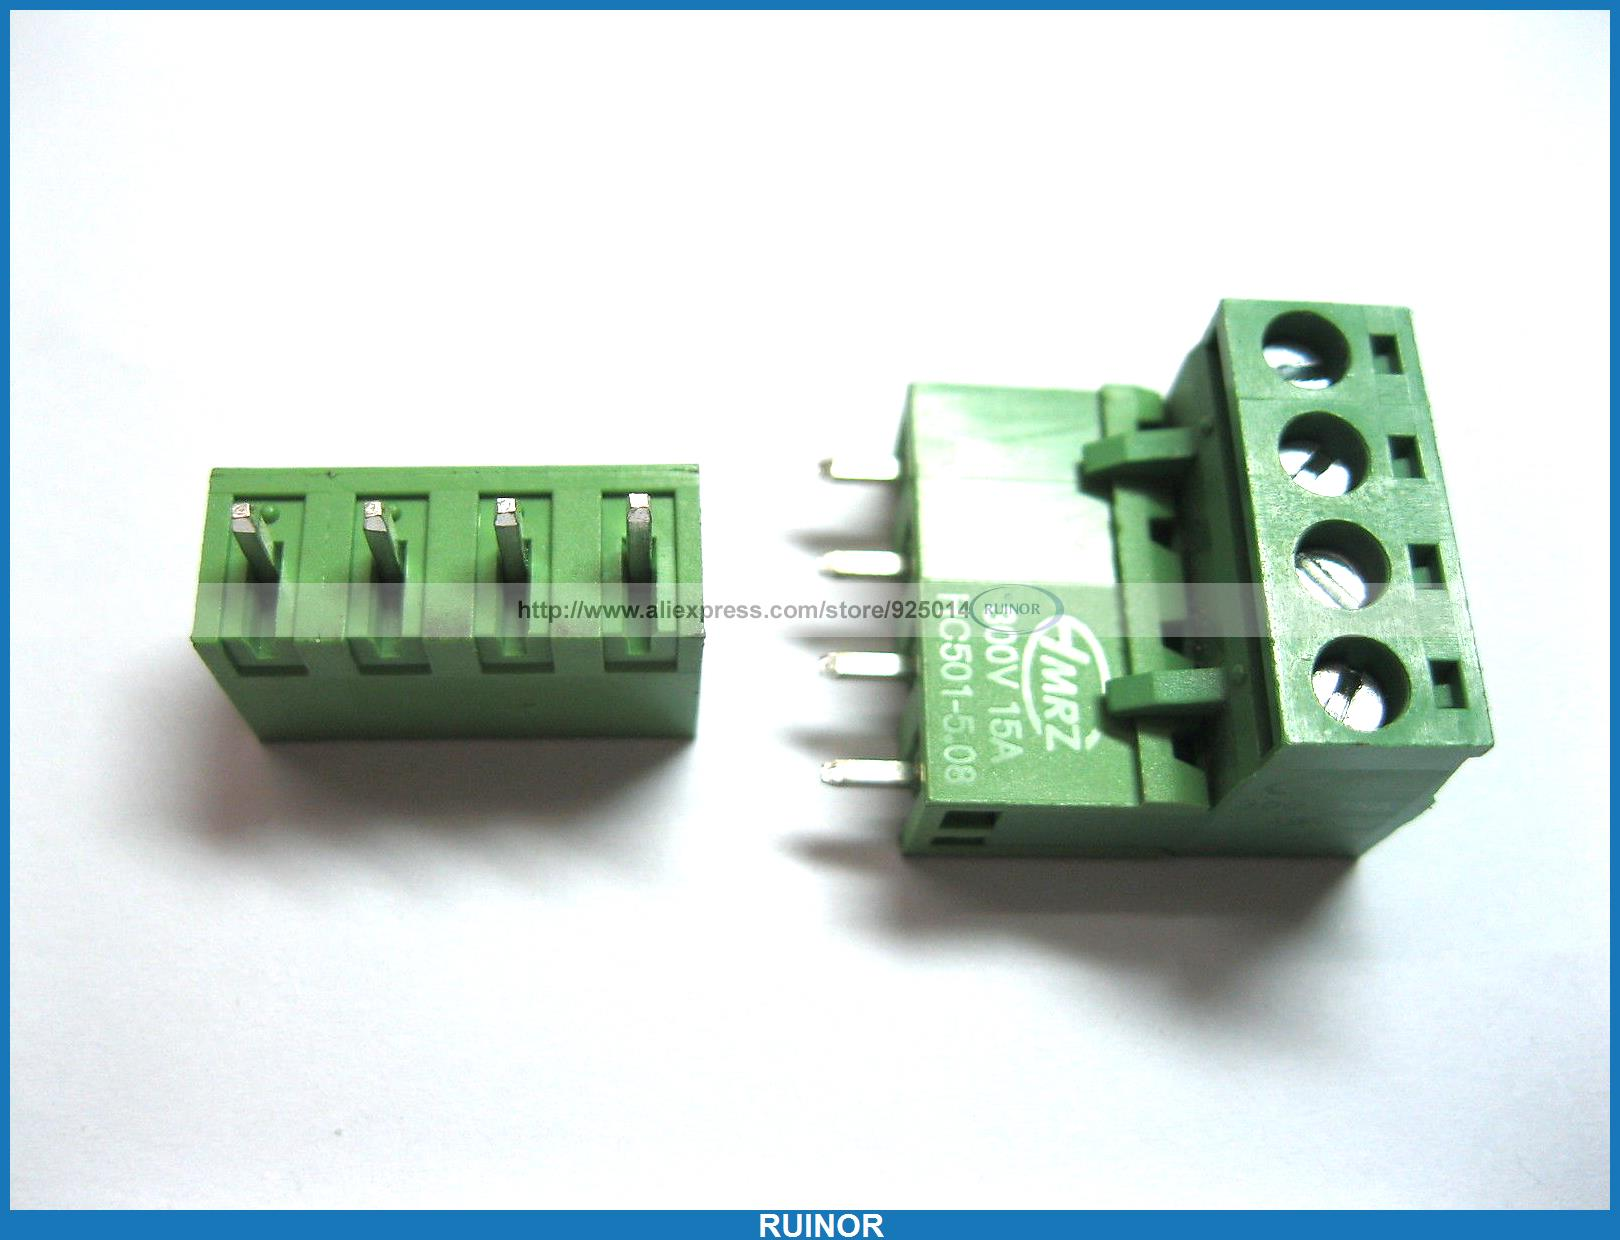 50 Pcs 5 08mm Straight 4 Pin Screw Terminal Block Connector Pluggable Type Green 1825242[pluggable terminal blocks 14 pos 5 08mm pitch thru h mr li